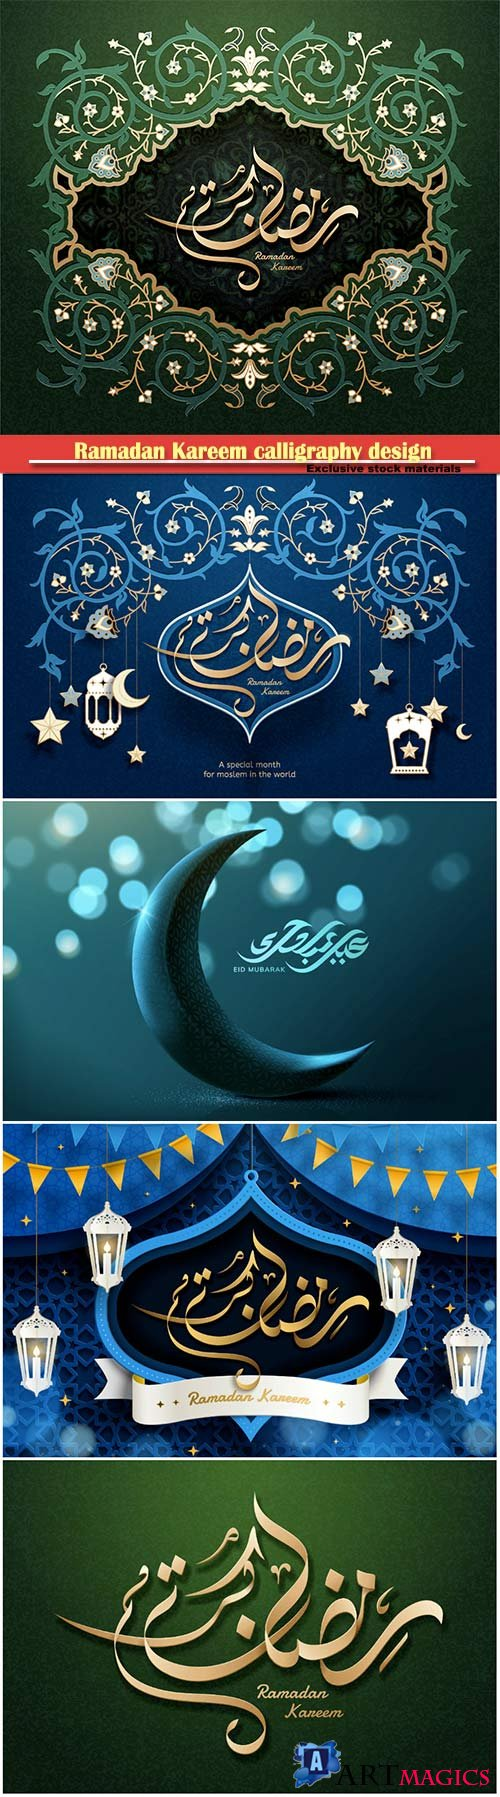 Ramadan Kareem calligraphy design, Eid mubarak  vector illustration